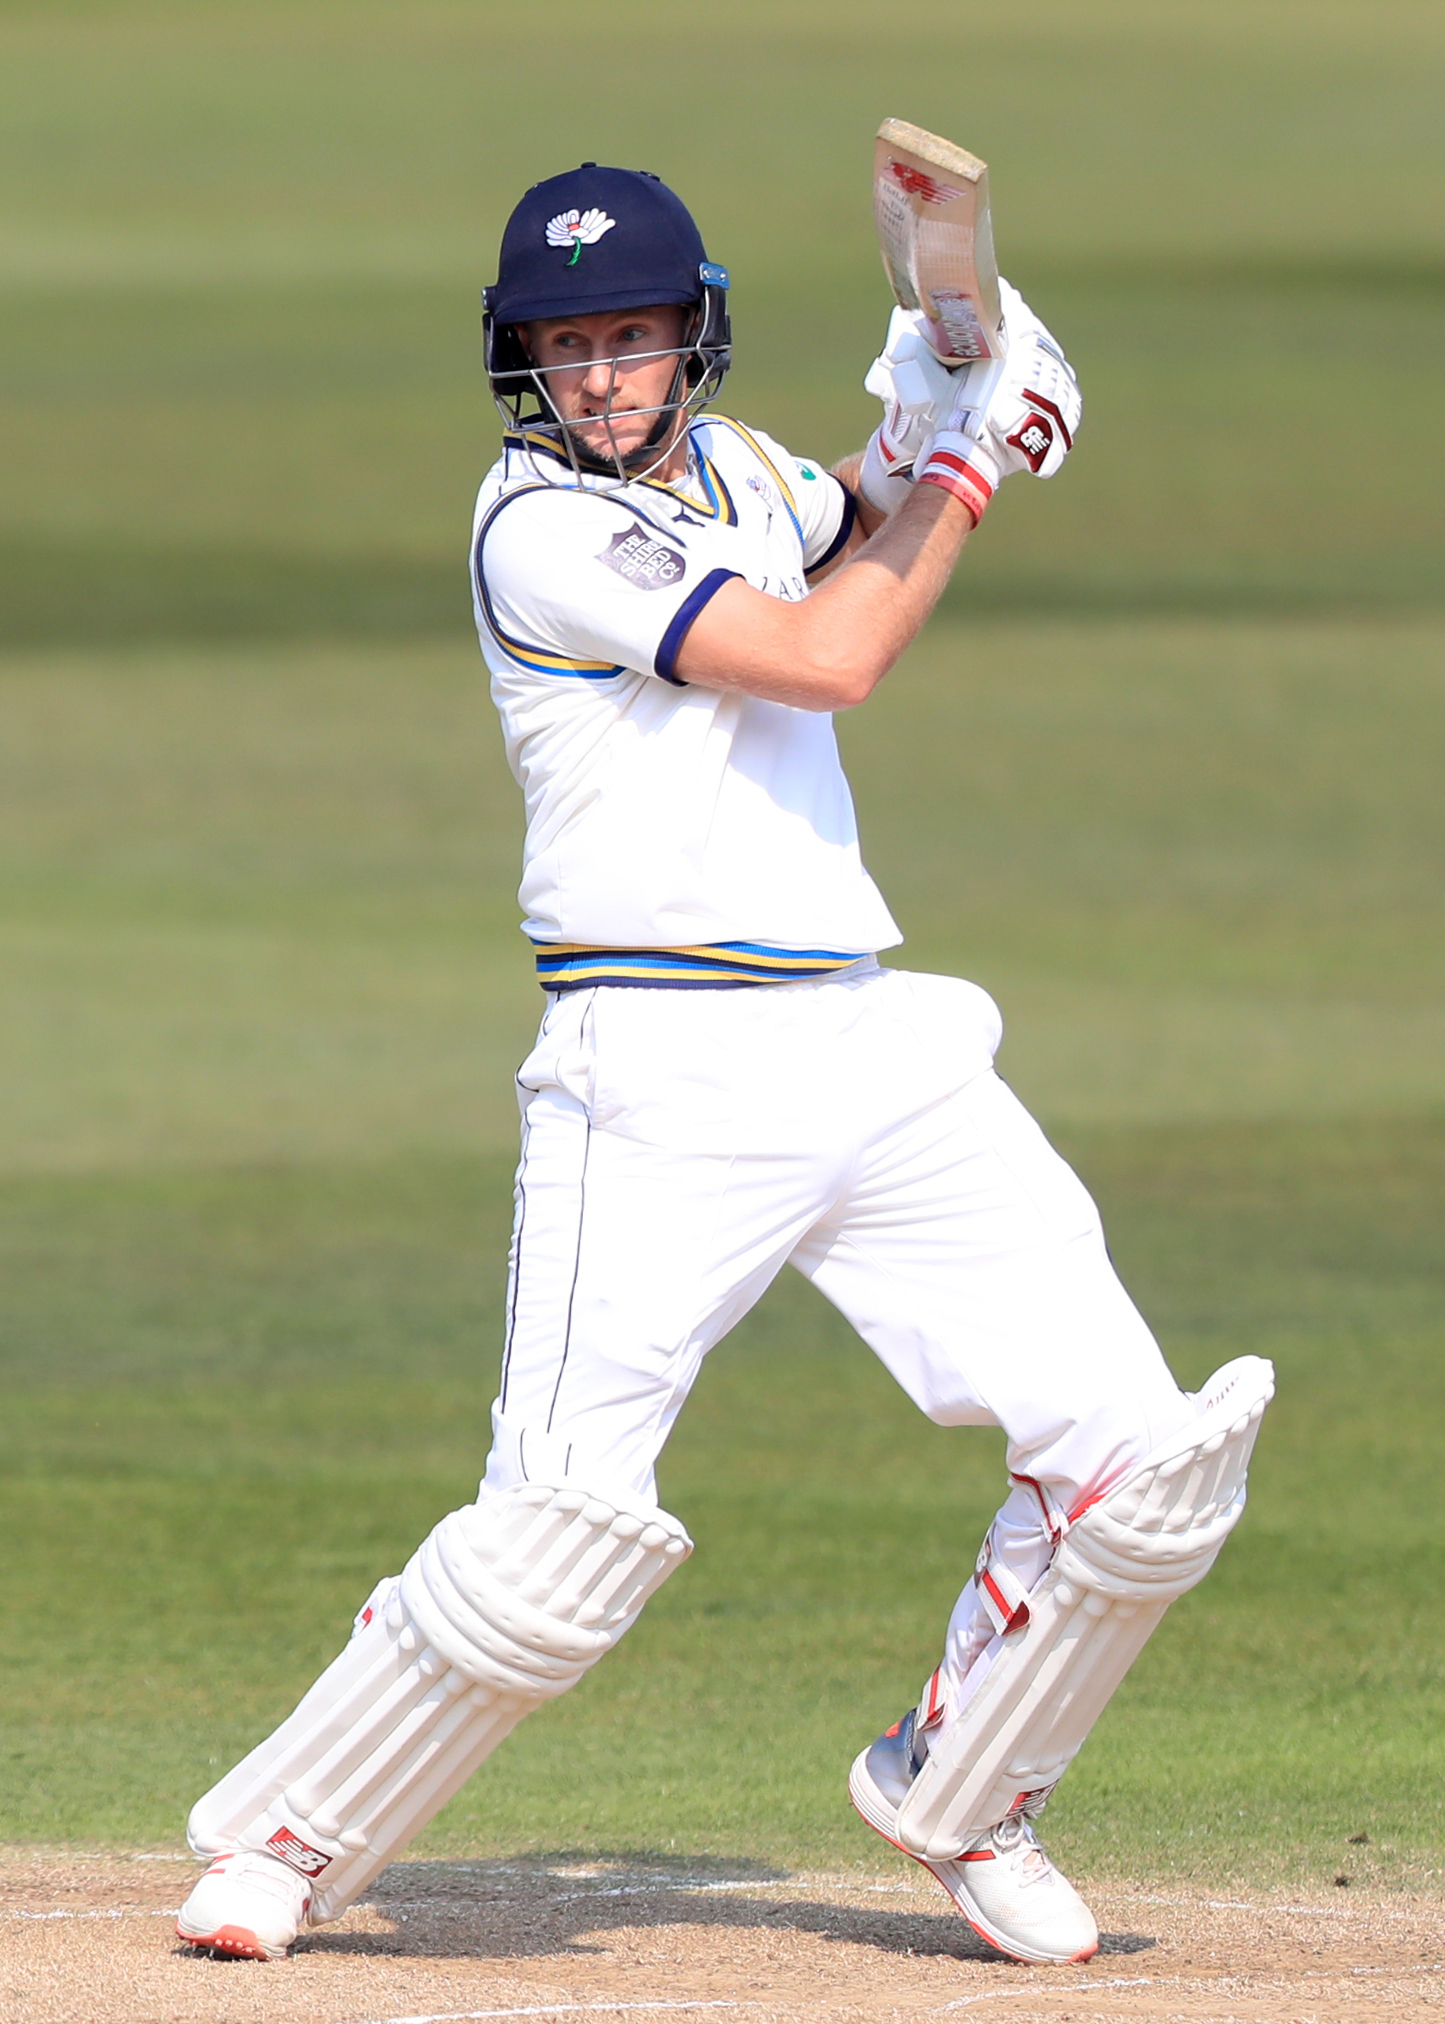 Yorkshire's Joe Root has made a fine start to the new season